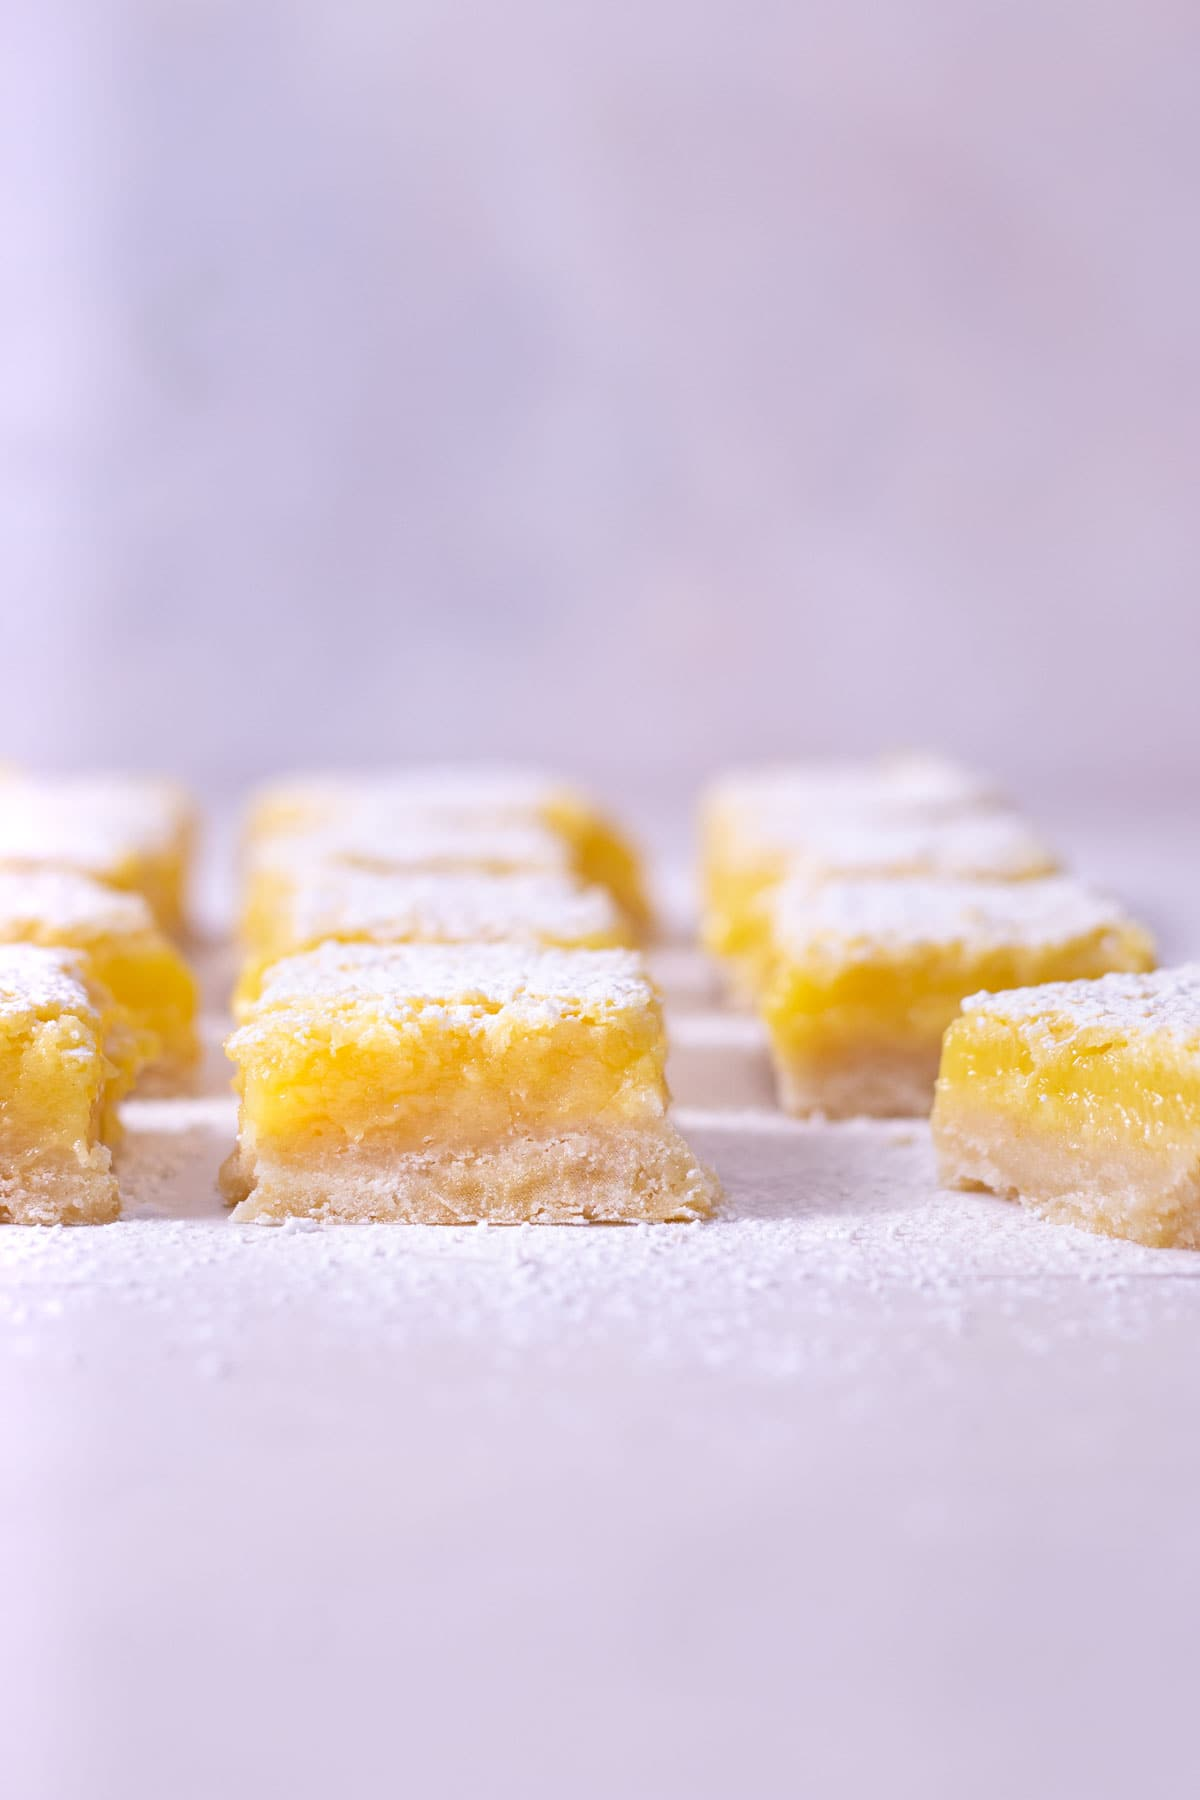 Straight on view of Lemon Bars lined up in a grid with a light blue background.